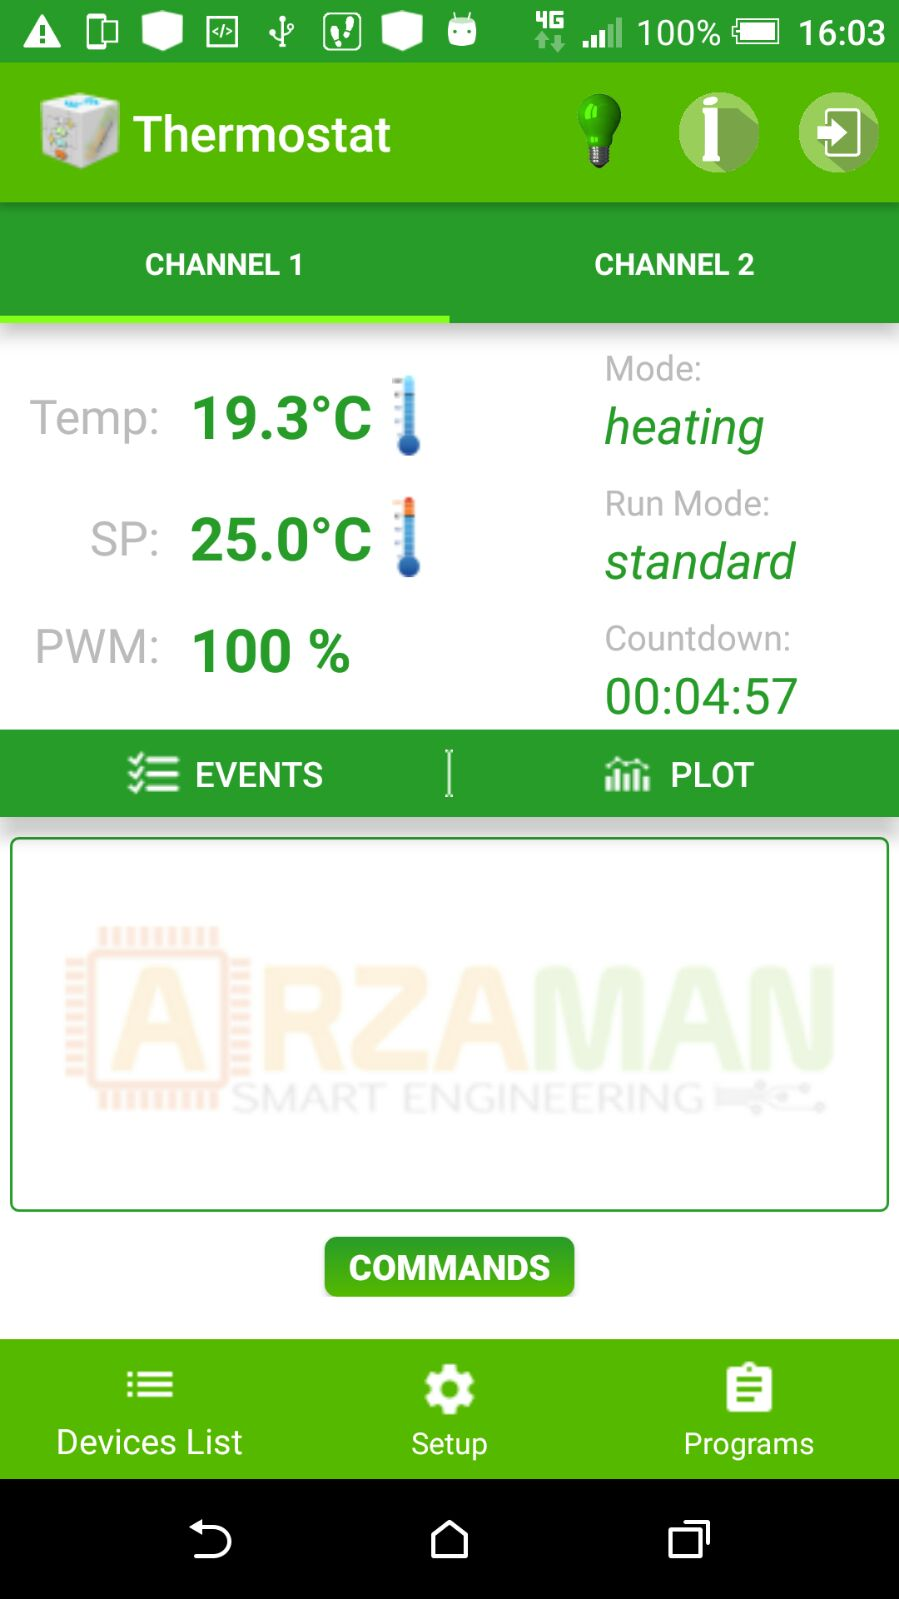 Smartpid Smart Temperature Controller Control Panel Question Home Brew Forums Homebrewing Application Will Follow In January And Day Monitor Automation Recipe Management Be Something Really Amazing